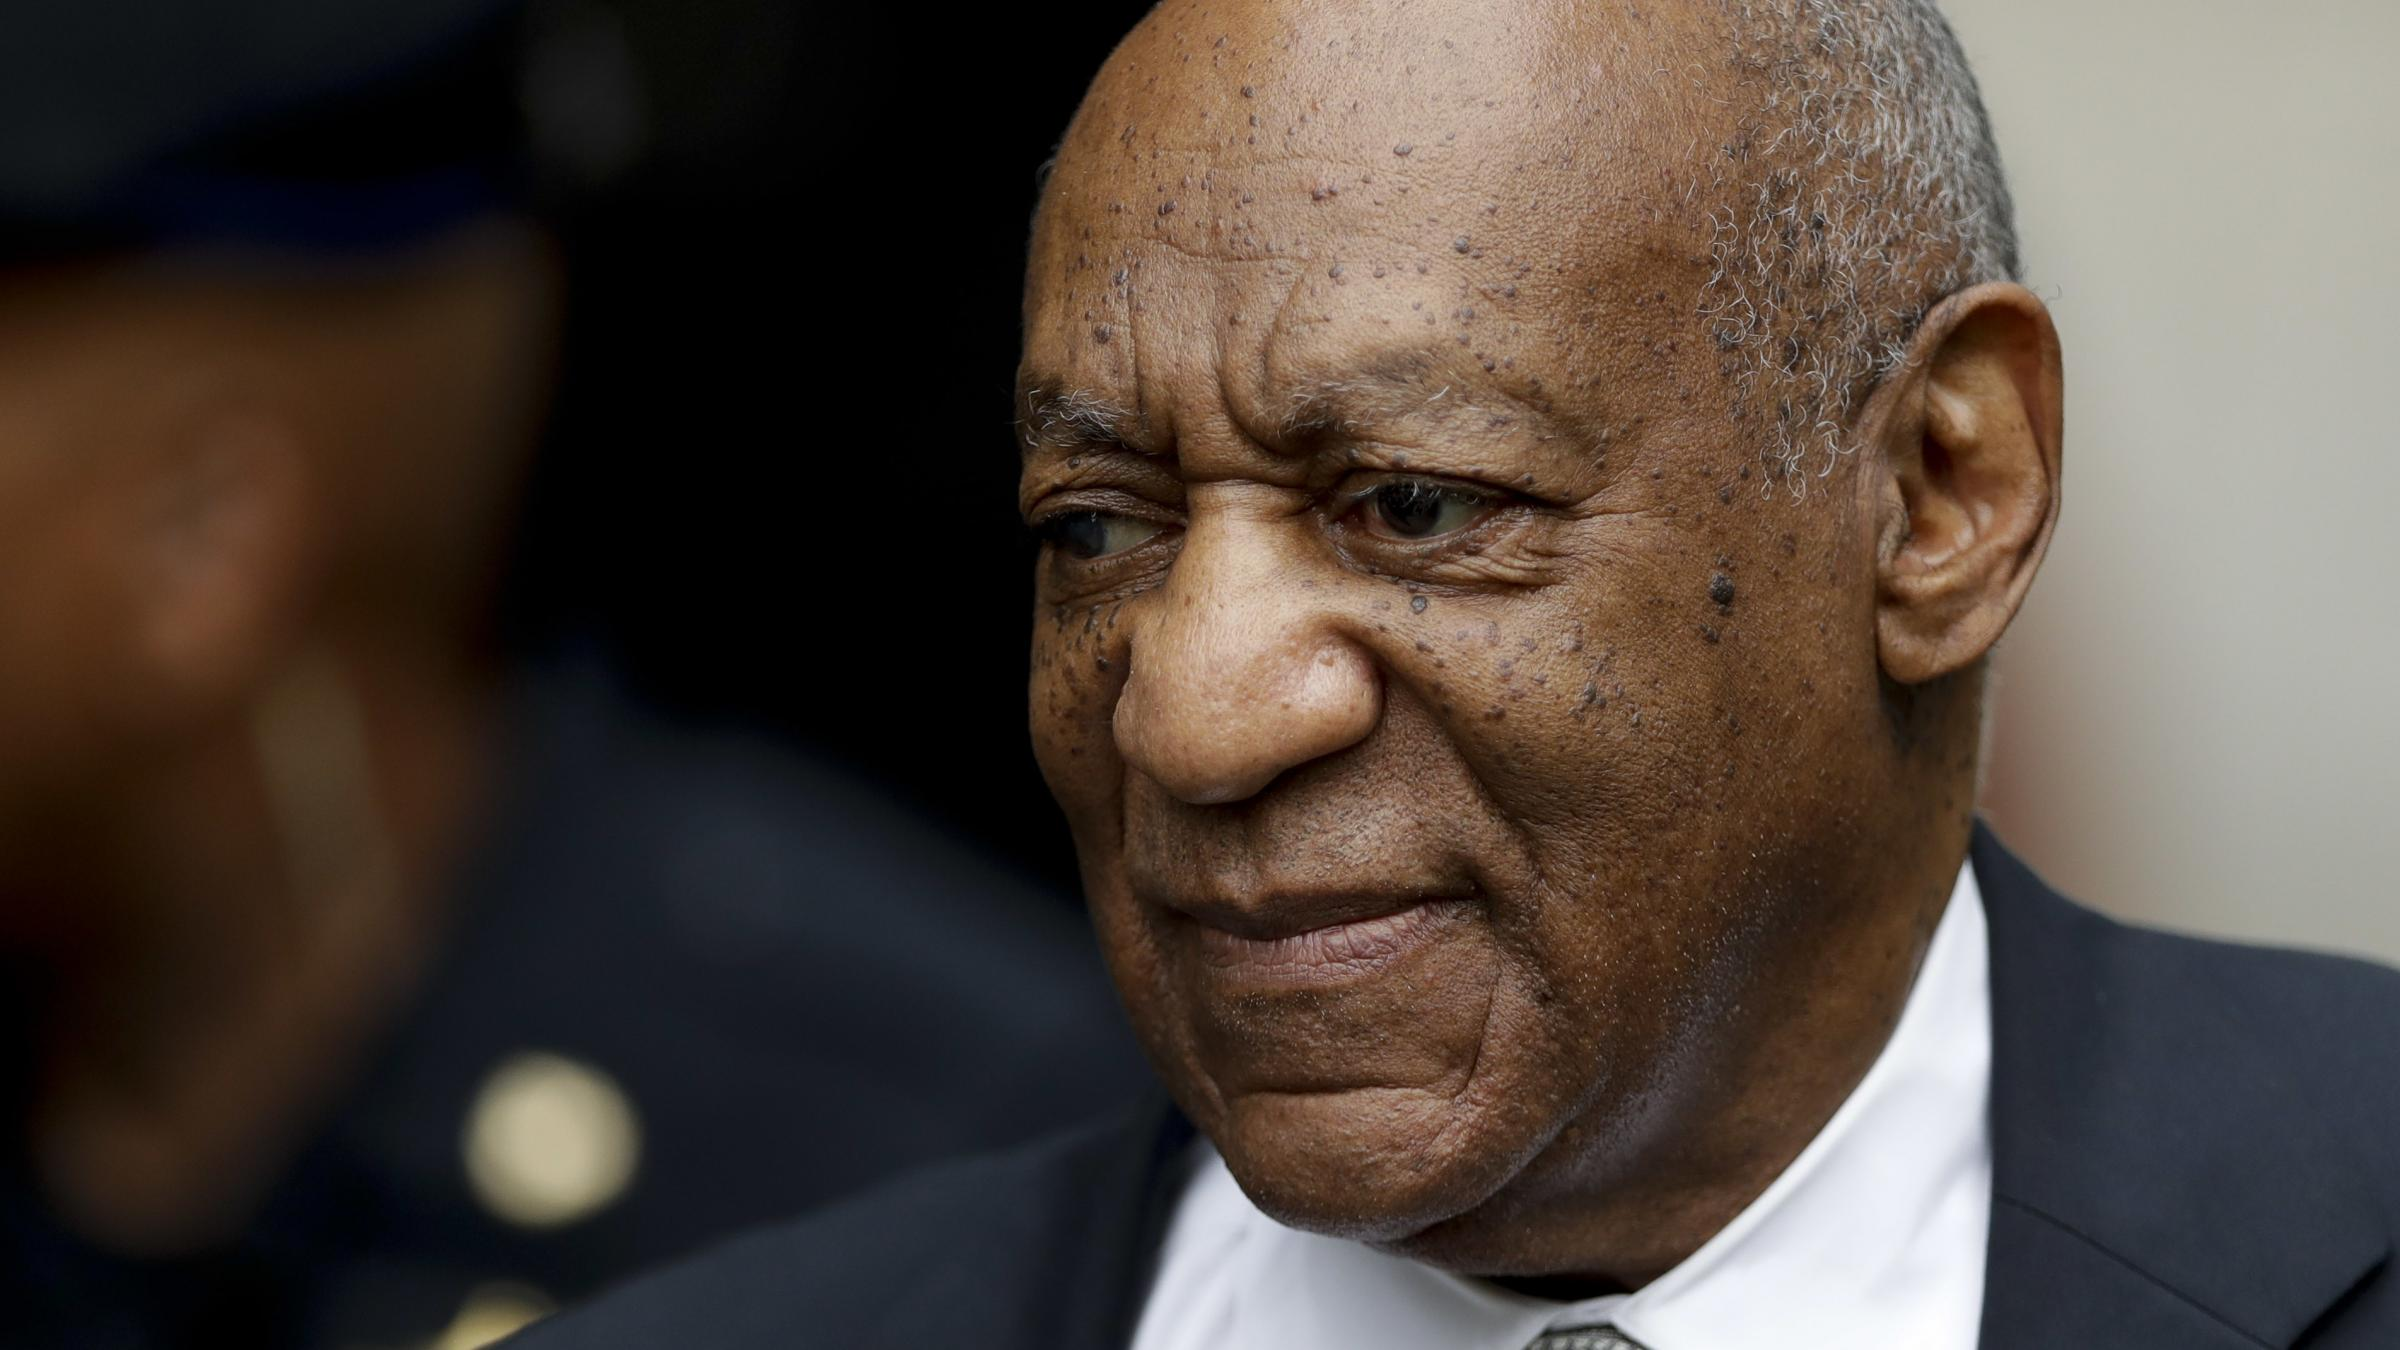 Prosecutor says Cosby accuser deserves verdict